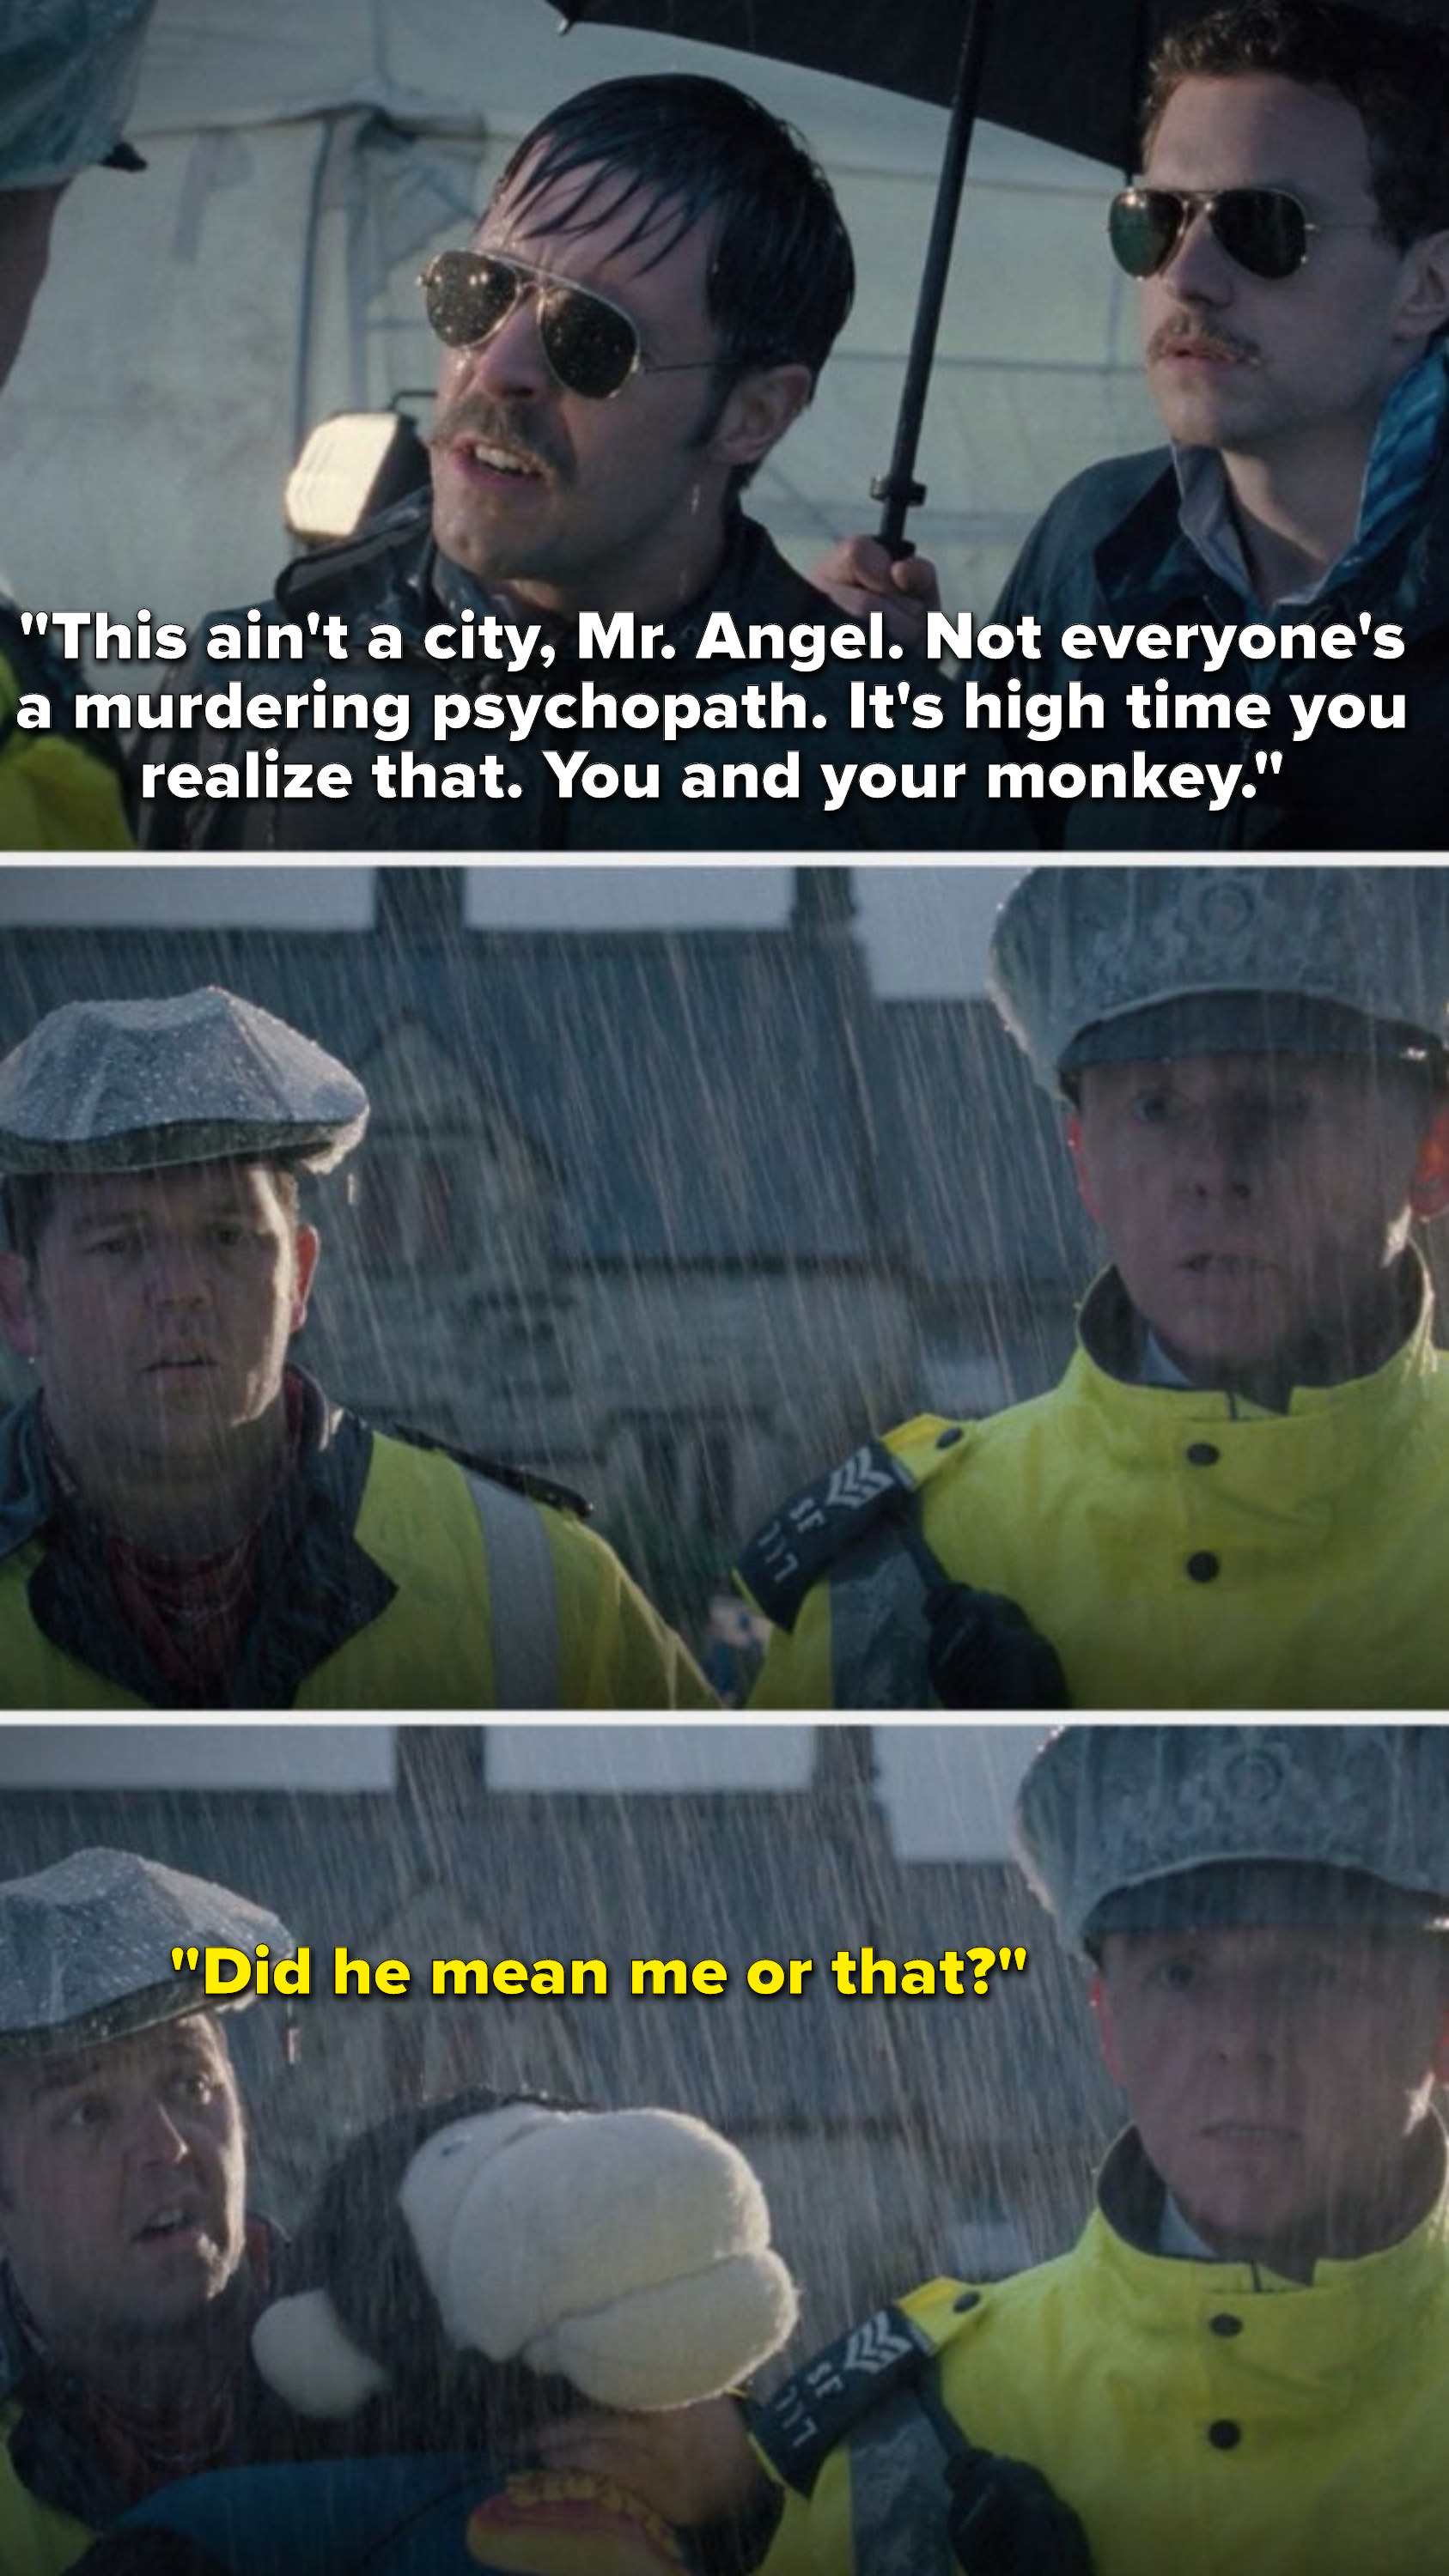 """says, """"This ain't a city, Mister Angel, not everyone's a murdering psychopath, it's high time you realize that, you and your monkey,"""" then Danny lifts a stuffed monkey he won earlier and says, """"Did he mean me or that"""""""